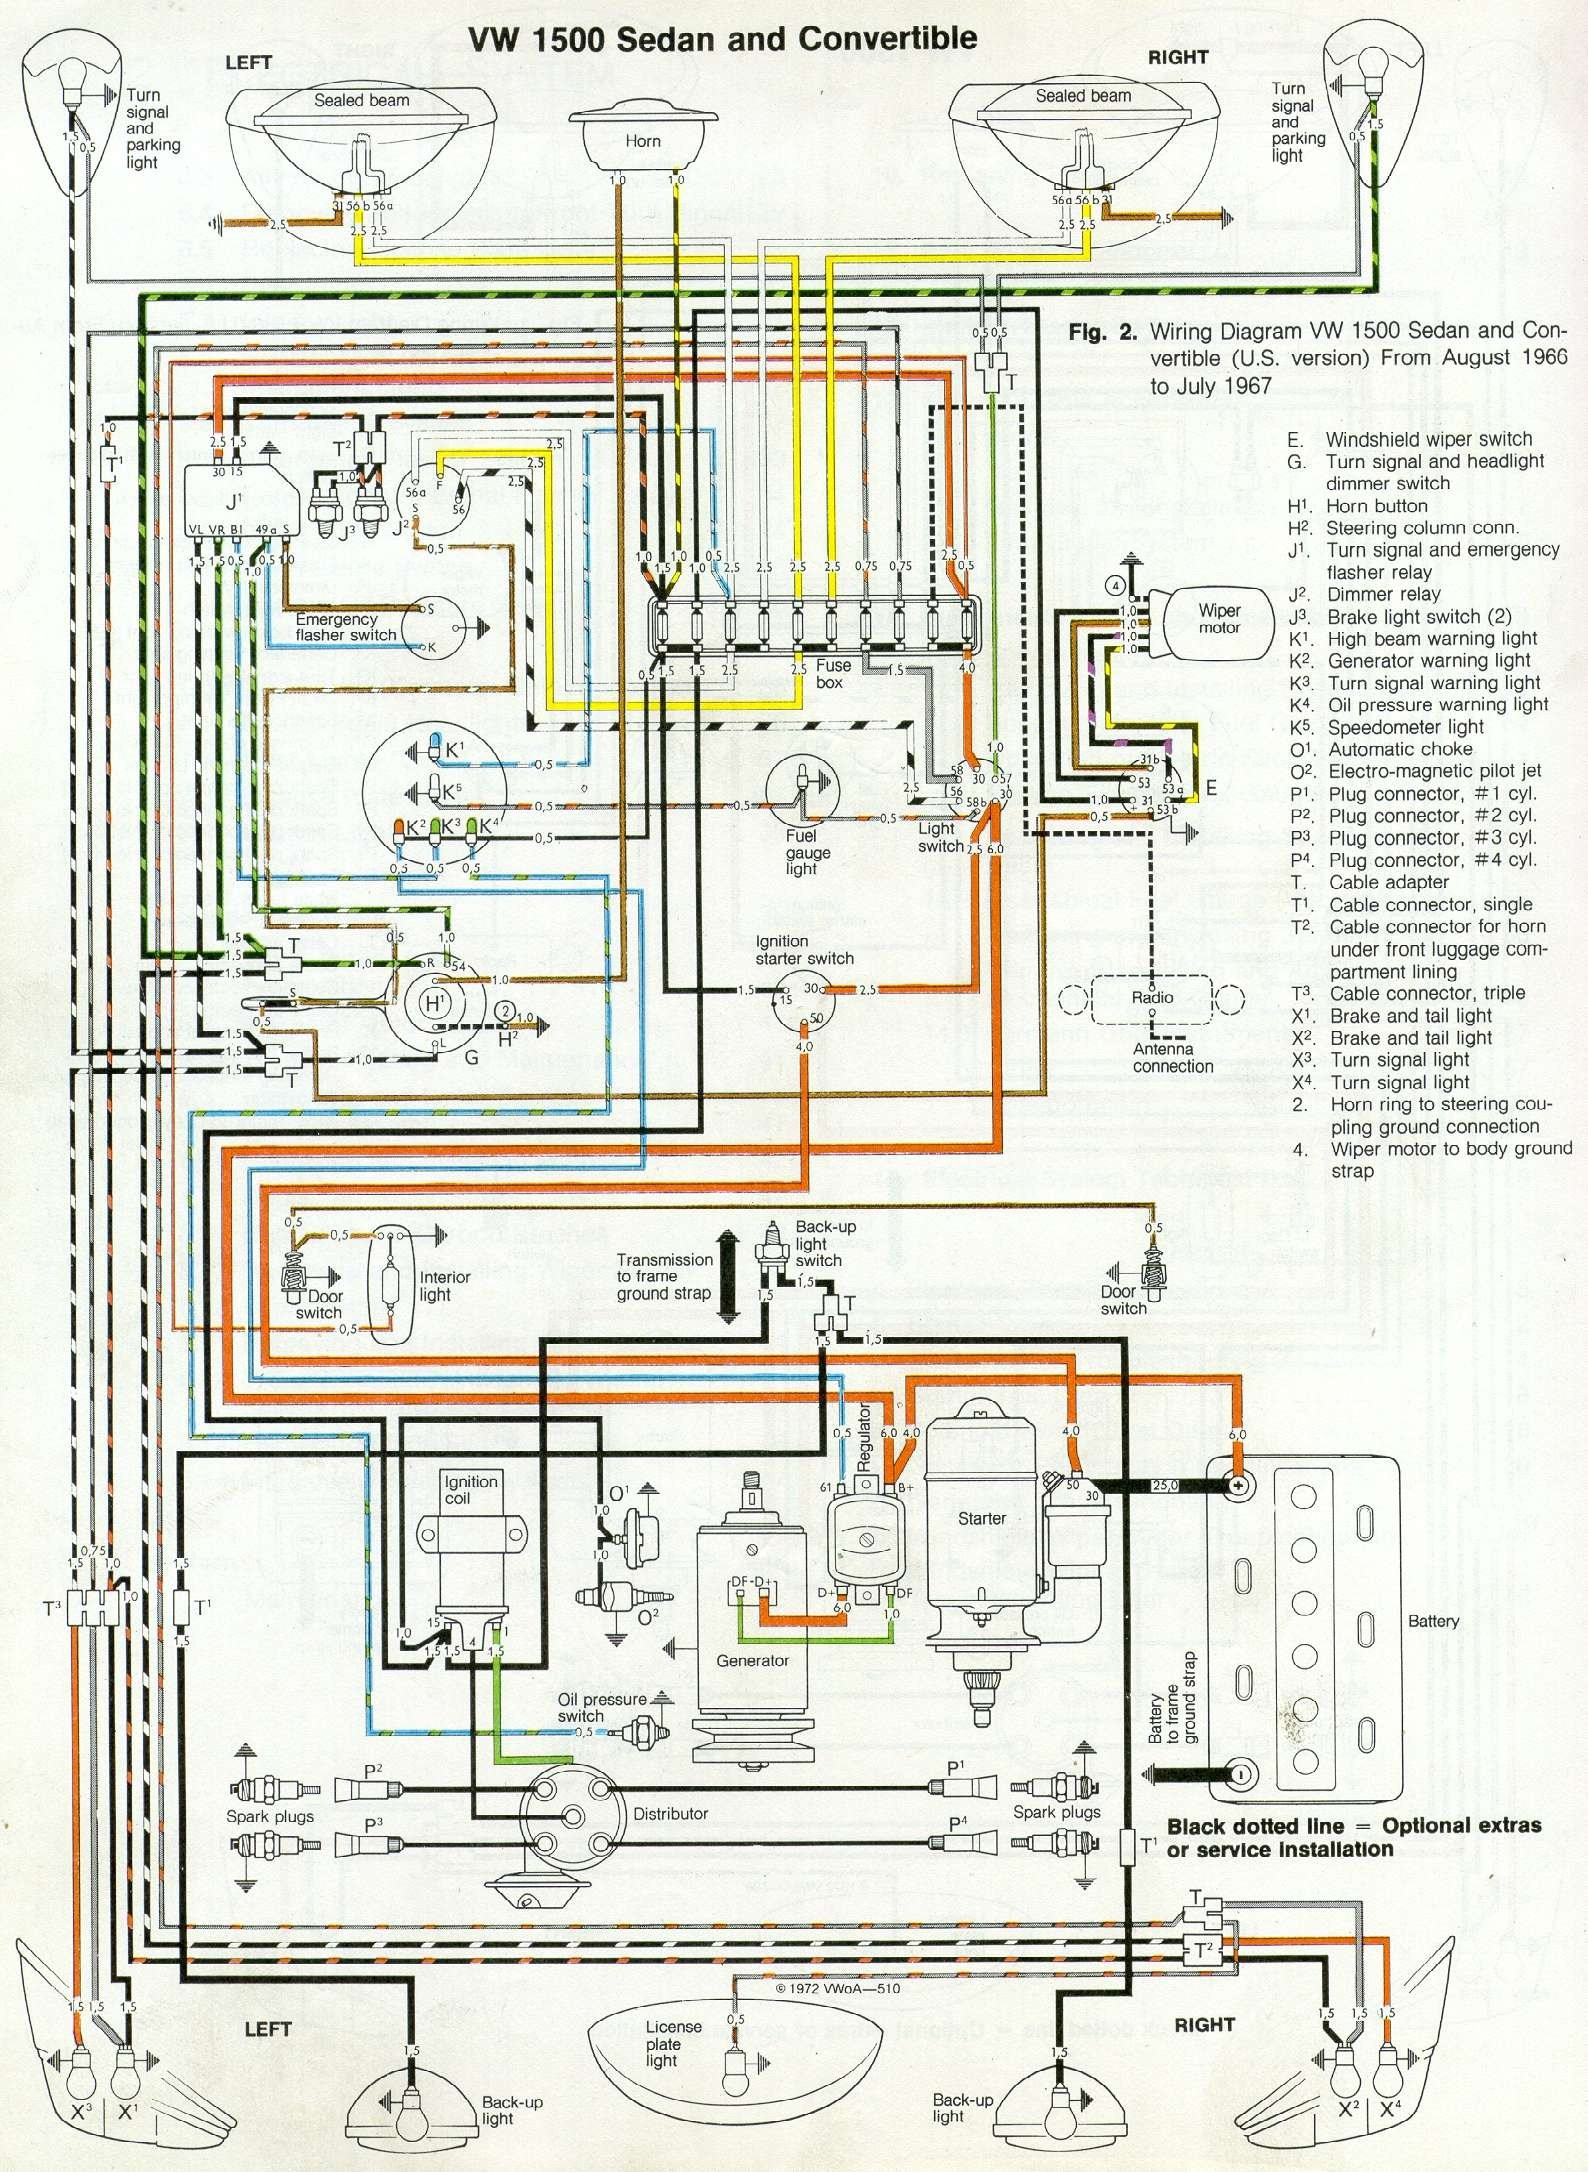 VW Beetle Wiring Digram 67 beetle wiring diagram u s version 1967 vw beetle vw beetle wiring diagram at virtualis.co